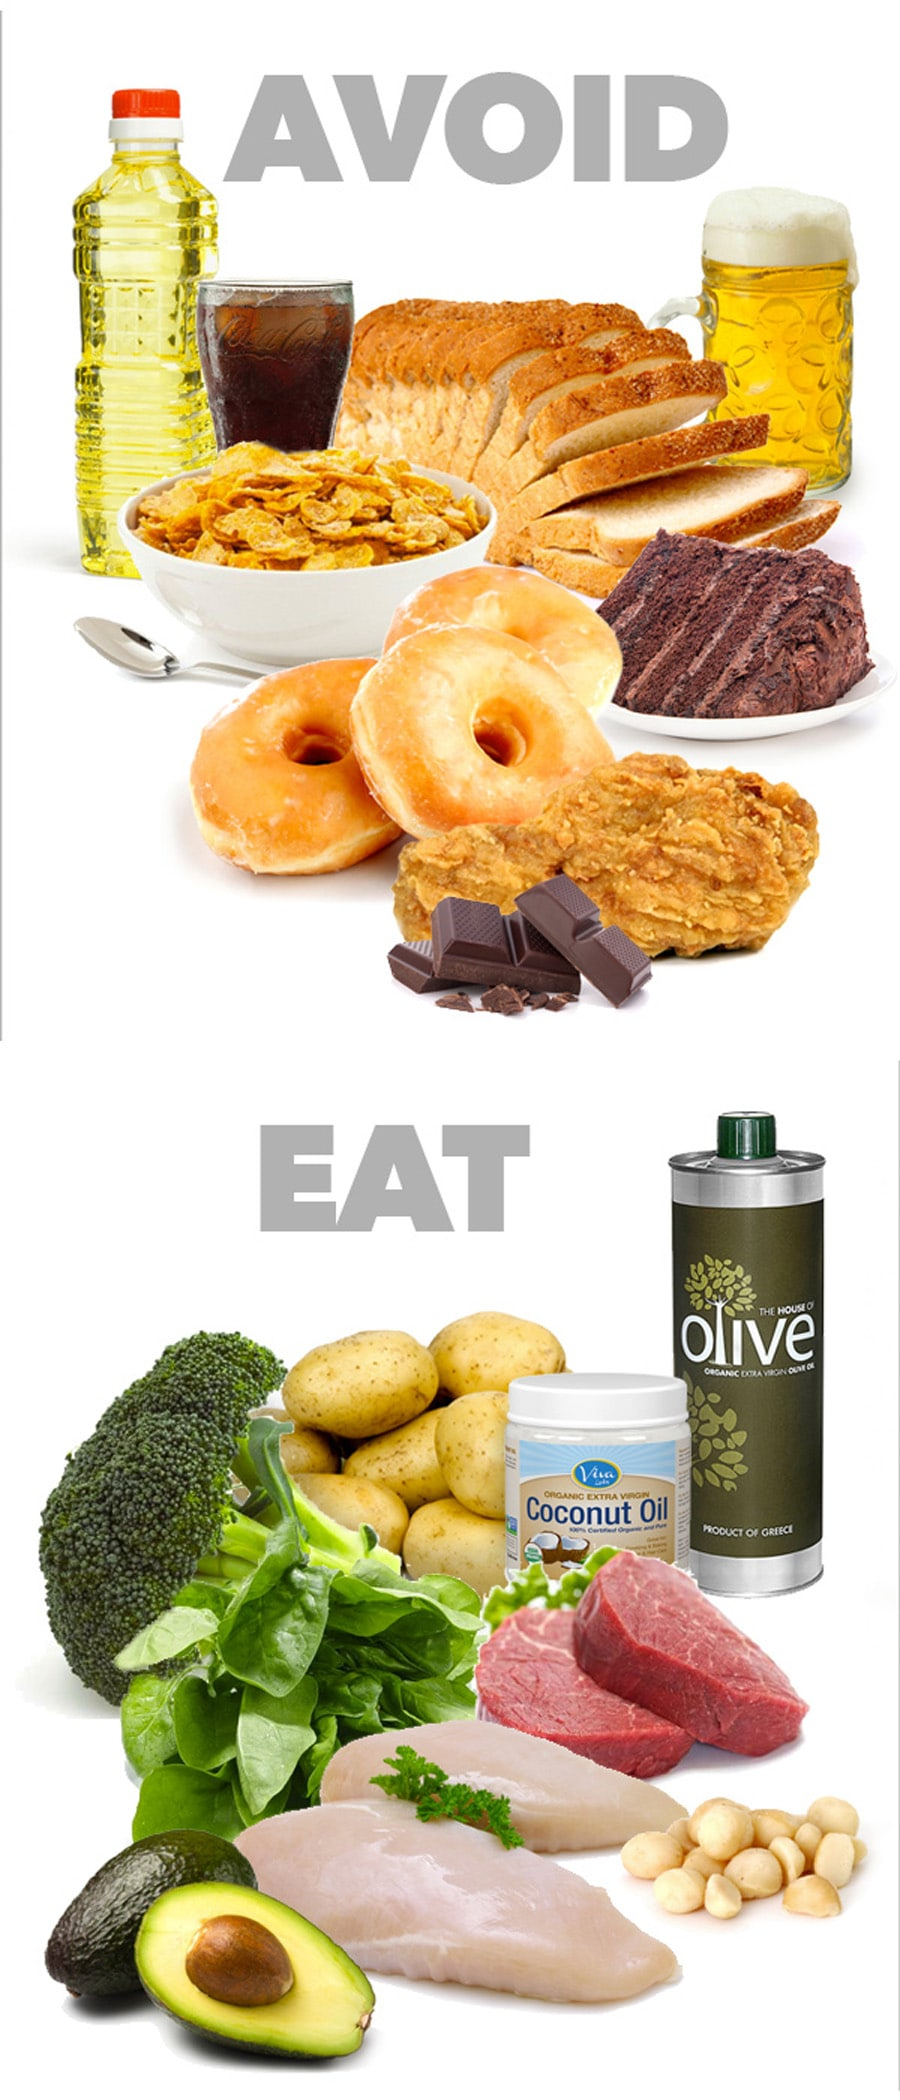 foods-to-avoid-if-you-want-to-lose-weight-min